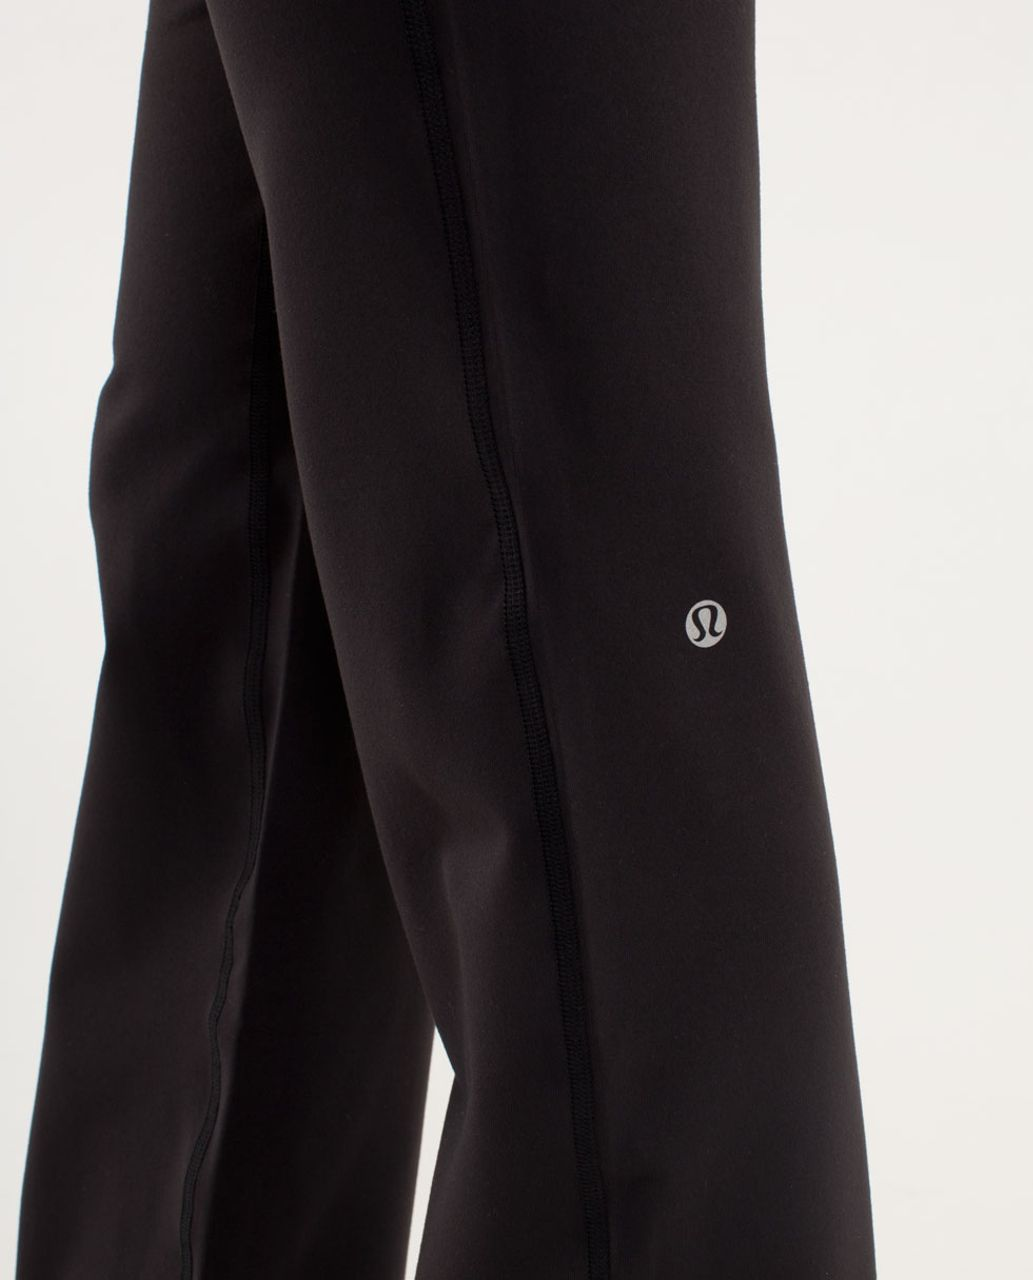 Lululemon Astro Pant (Tall) - Black / Dune / Bleached Coral